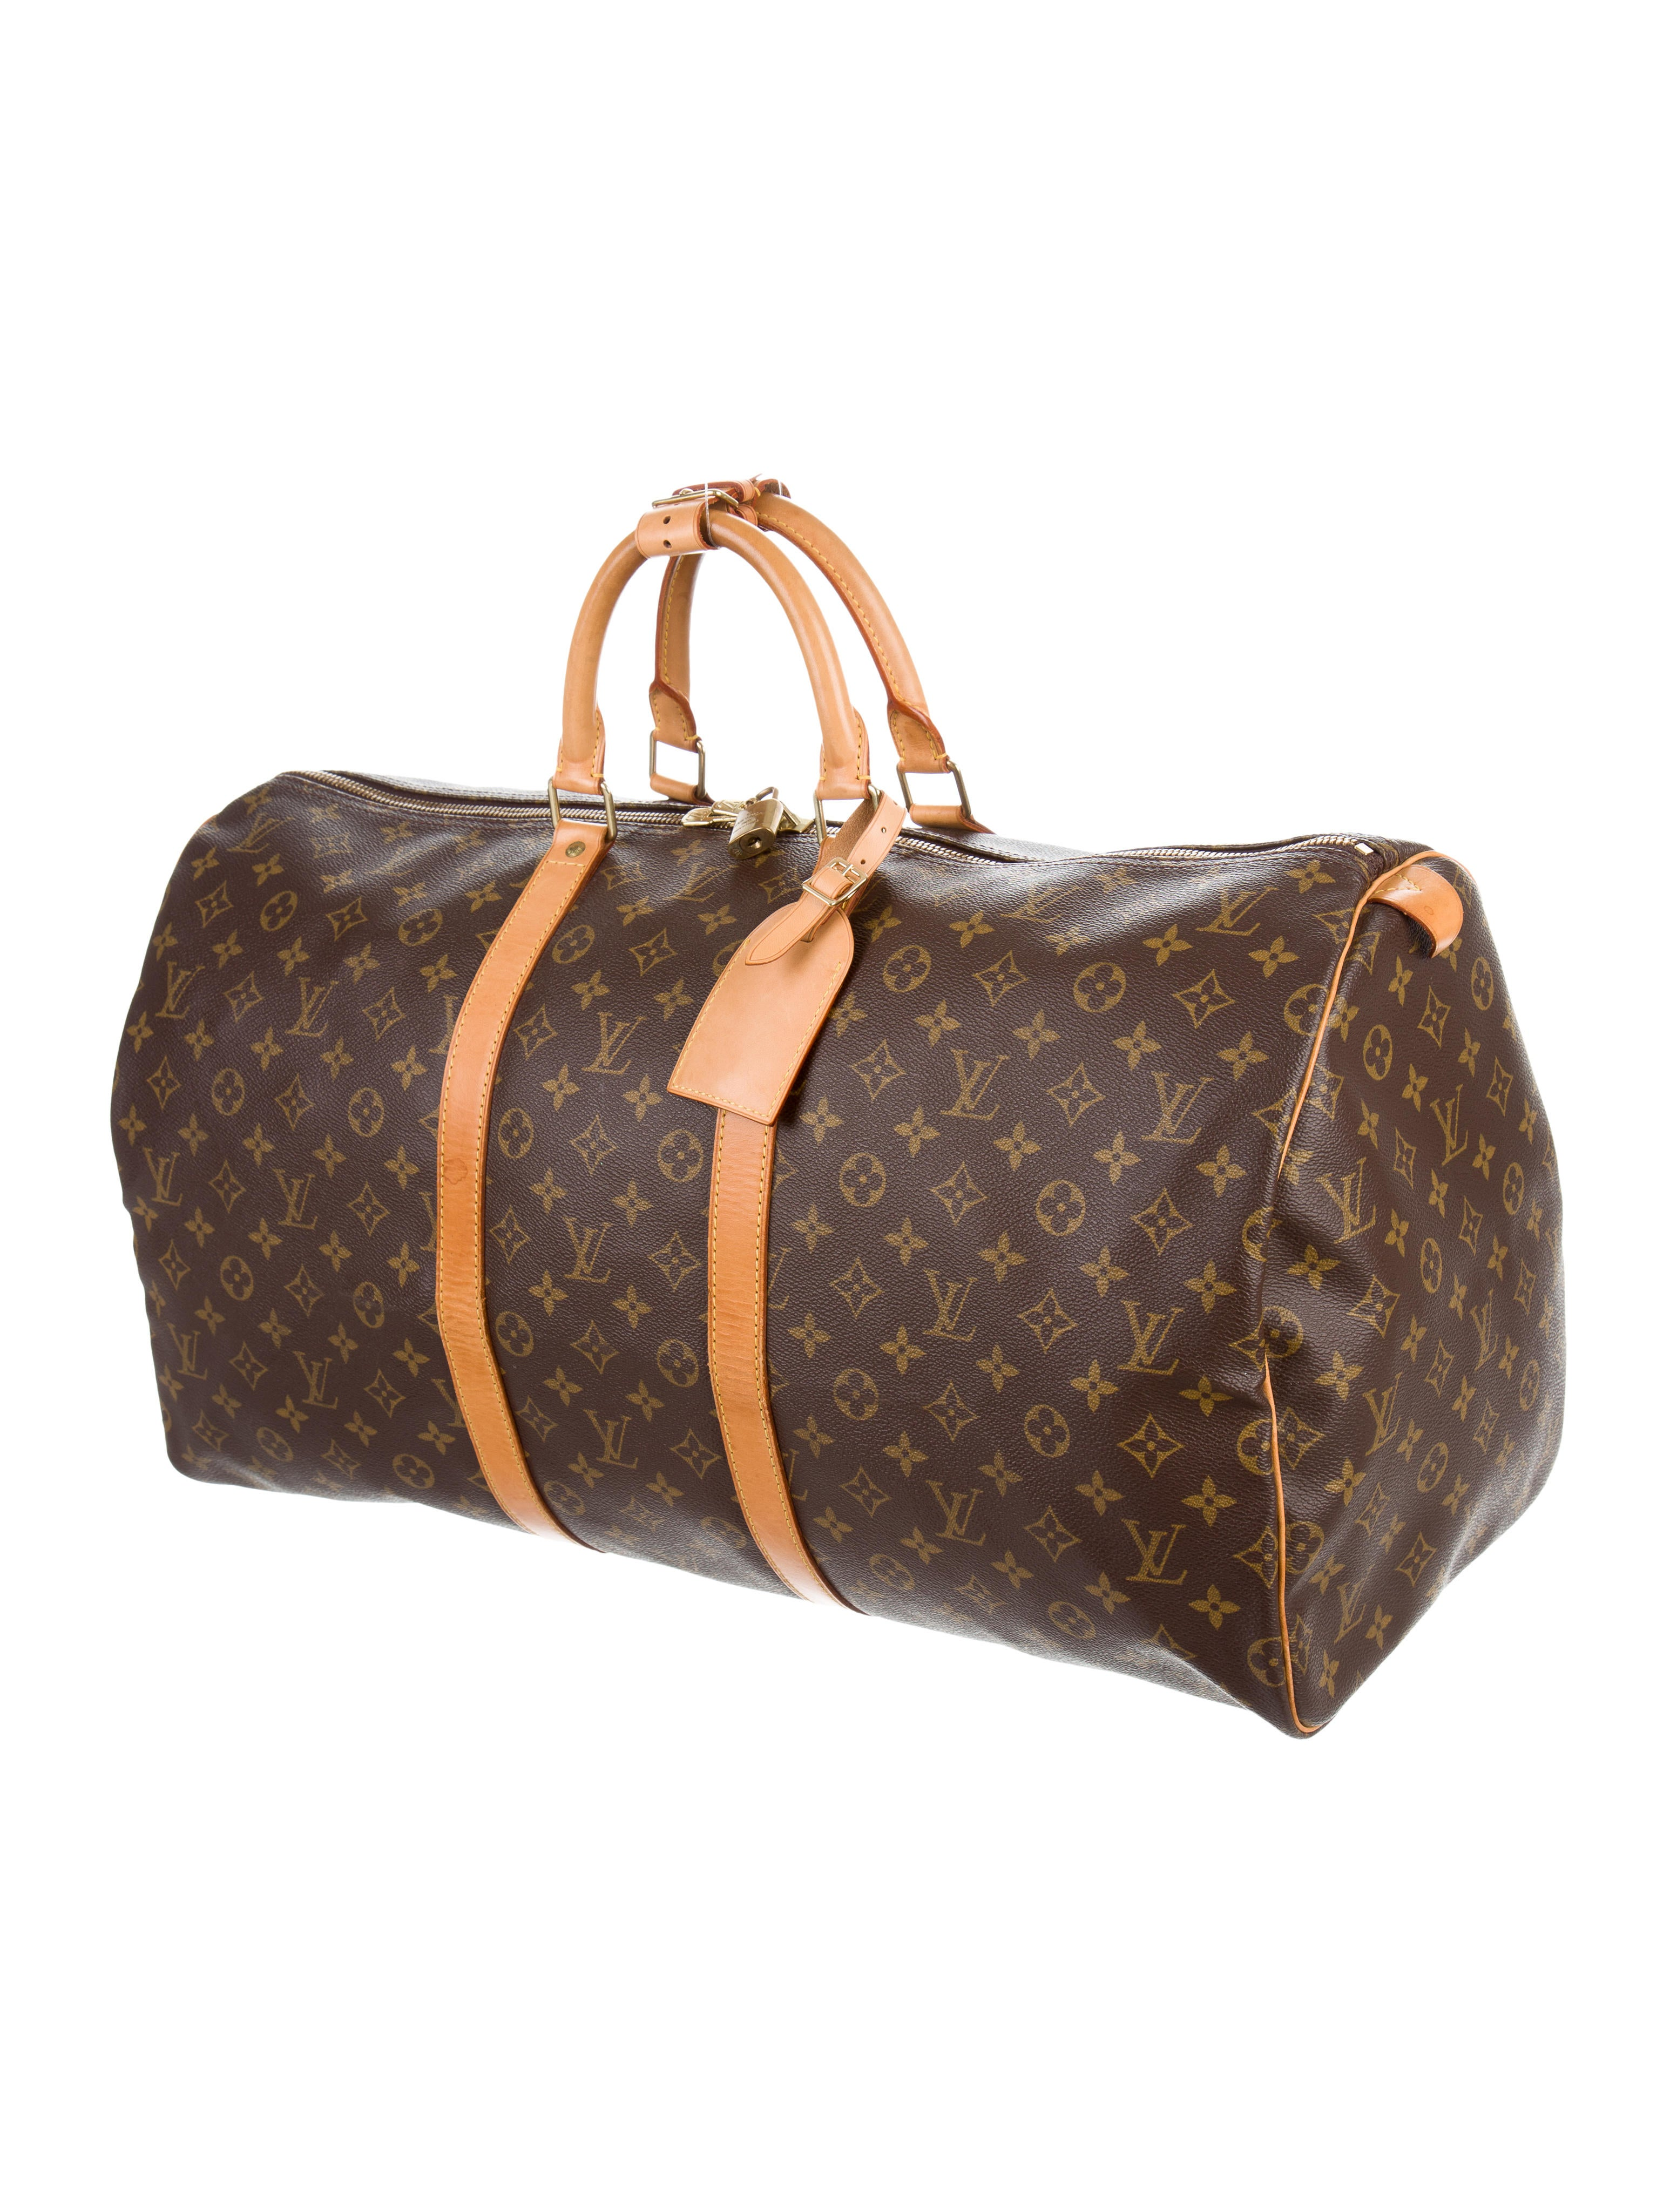 louis vuitton monogram keepall 55 bags lou122341 the. Black Bedroom Furniture Sets. Home Design Ideas